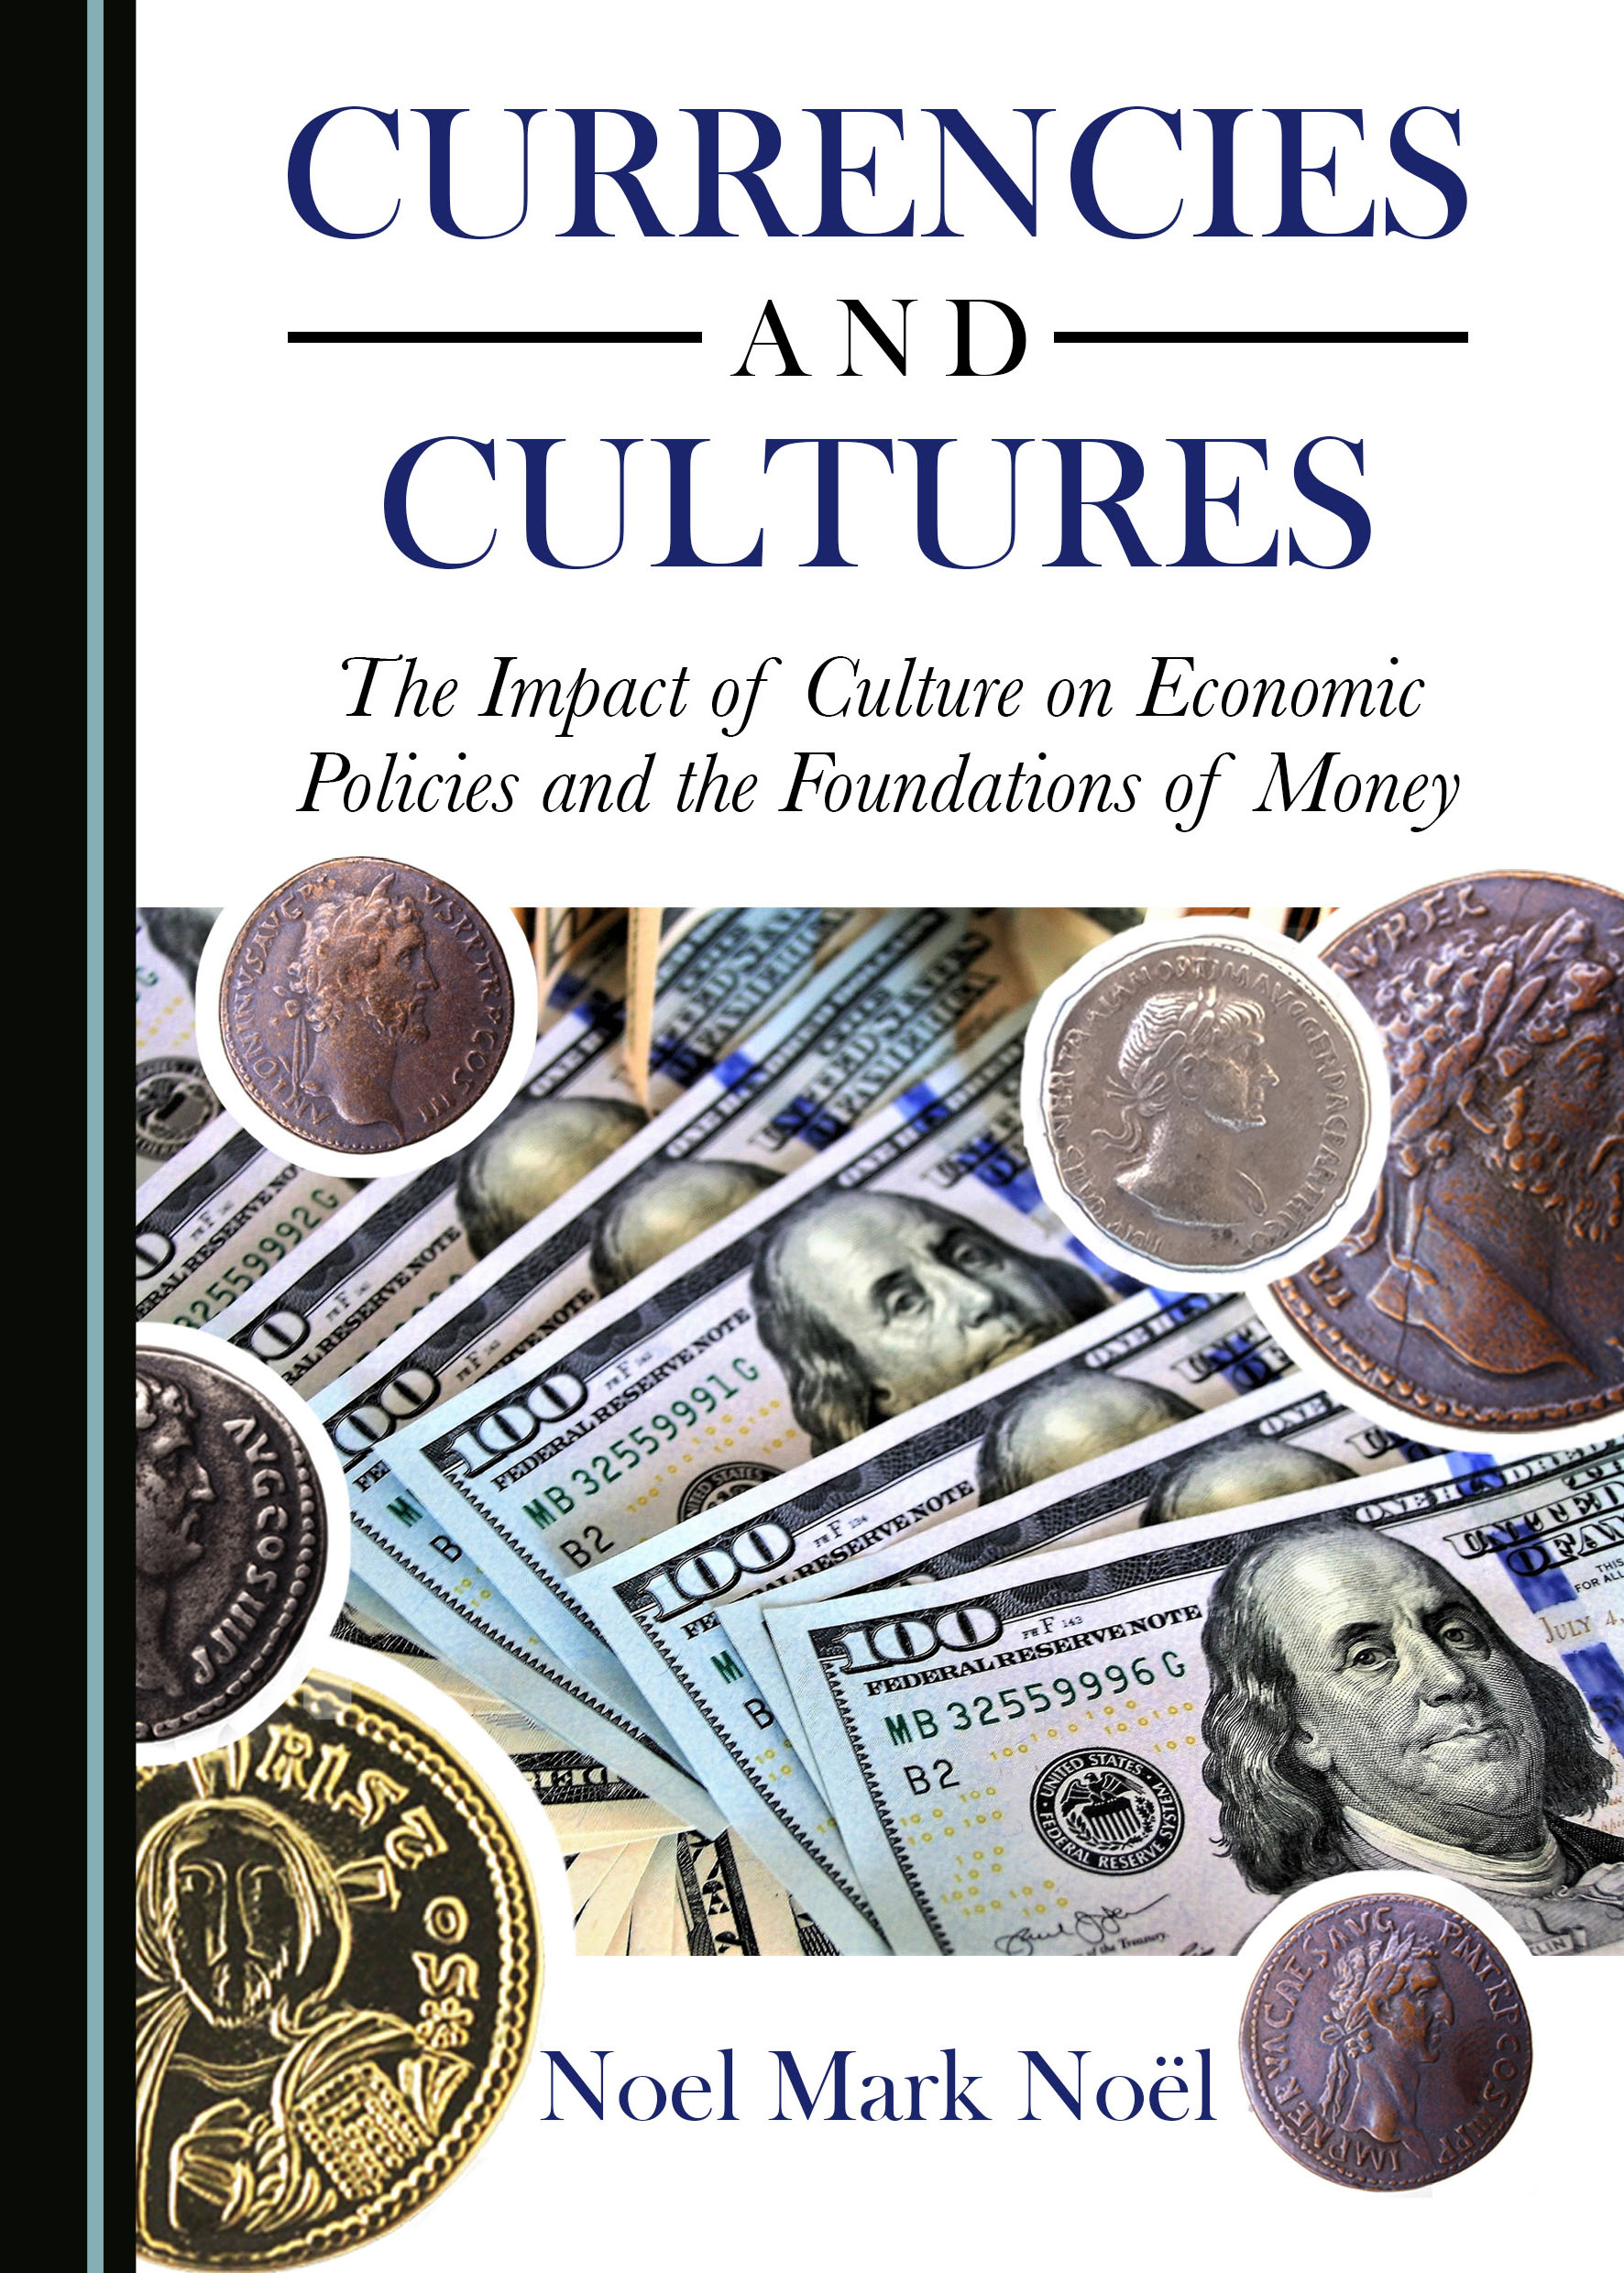 Currencies and Cultures: The Impact of Culture on Economic Policies and the Foundations of Money